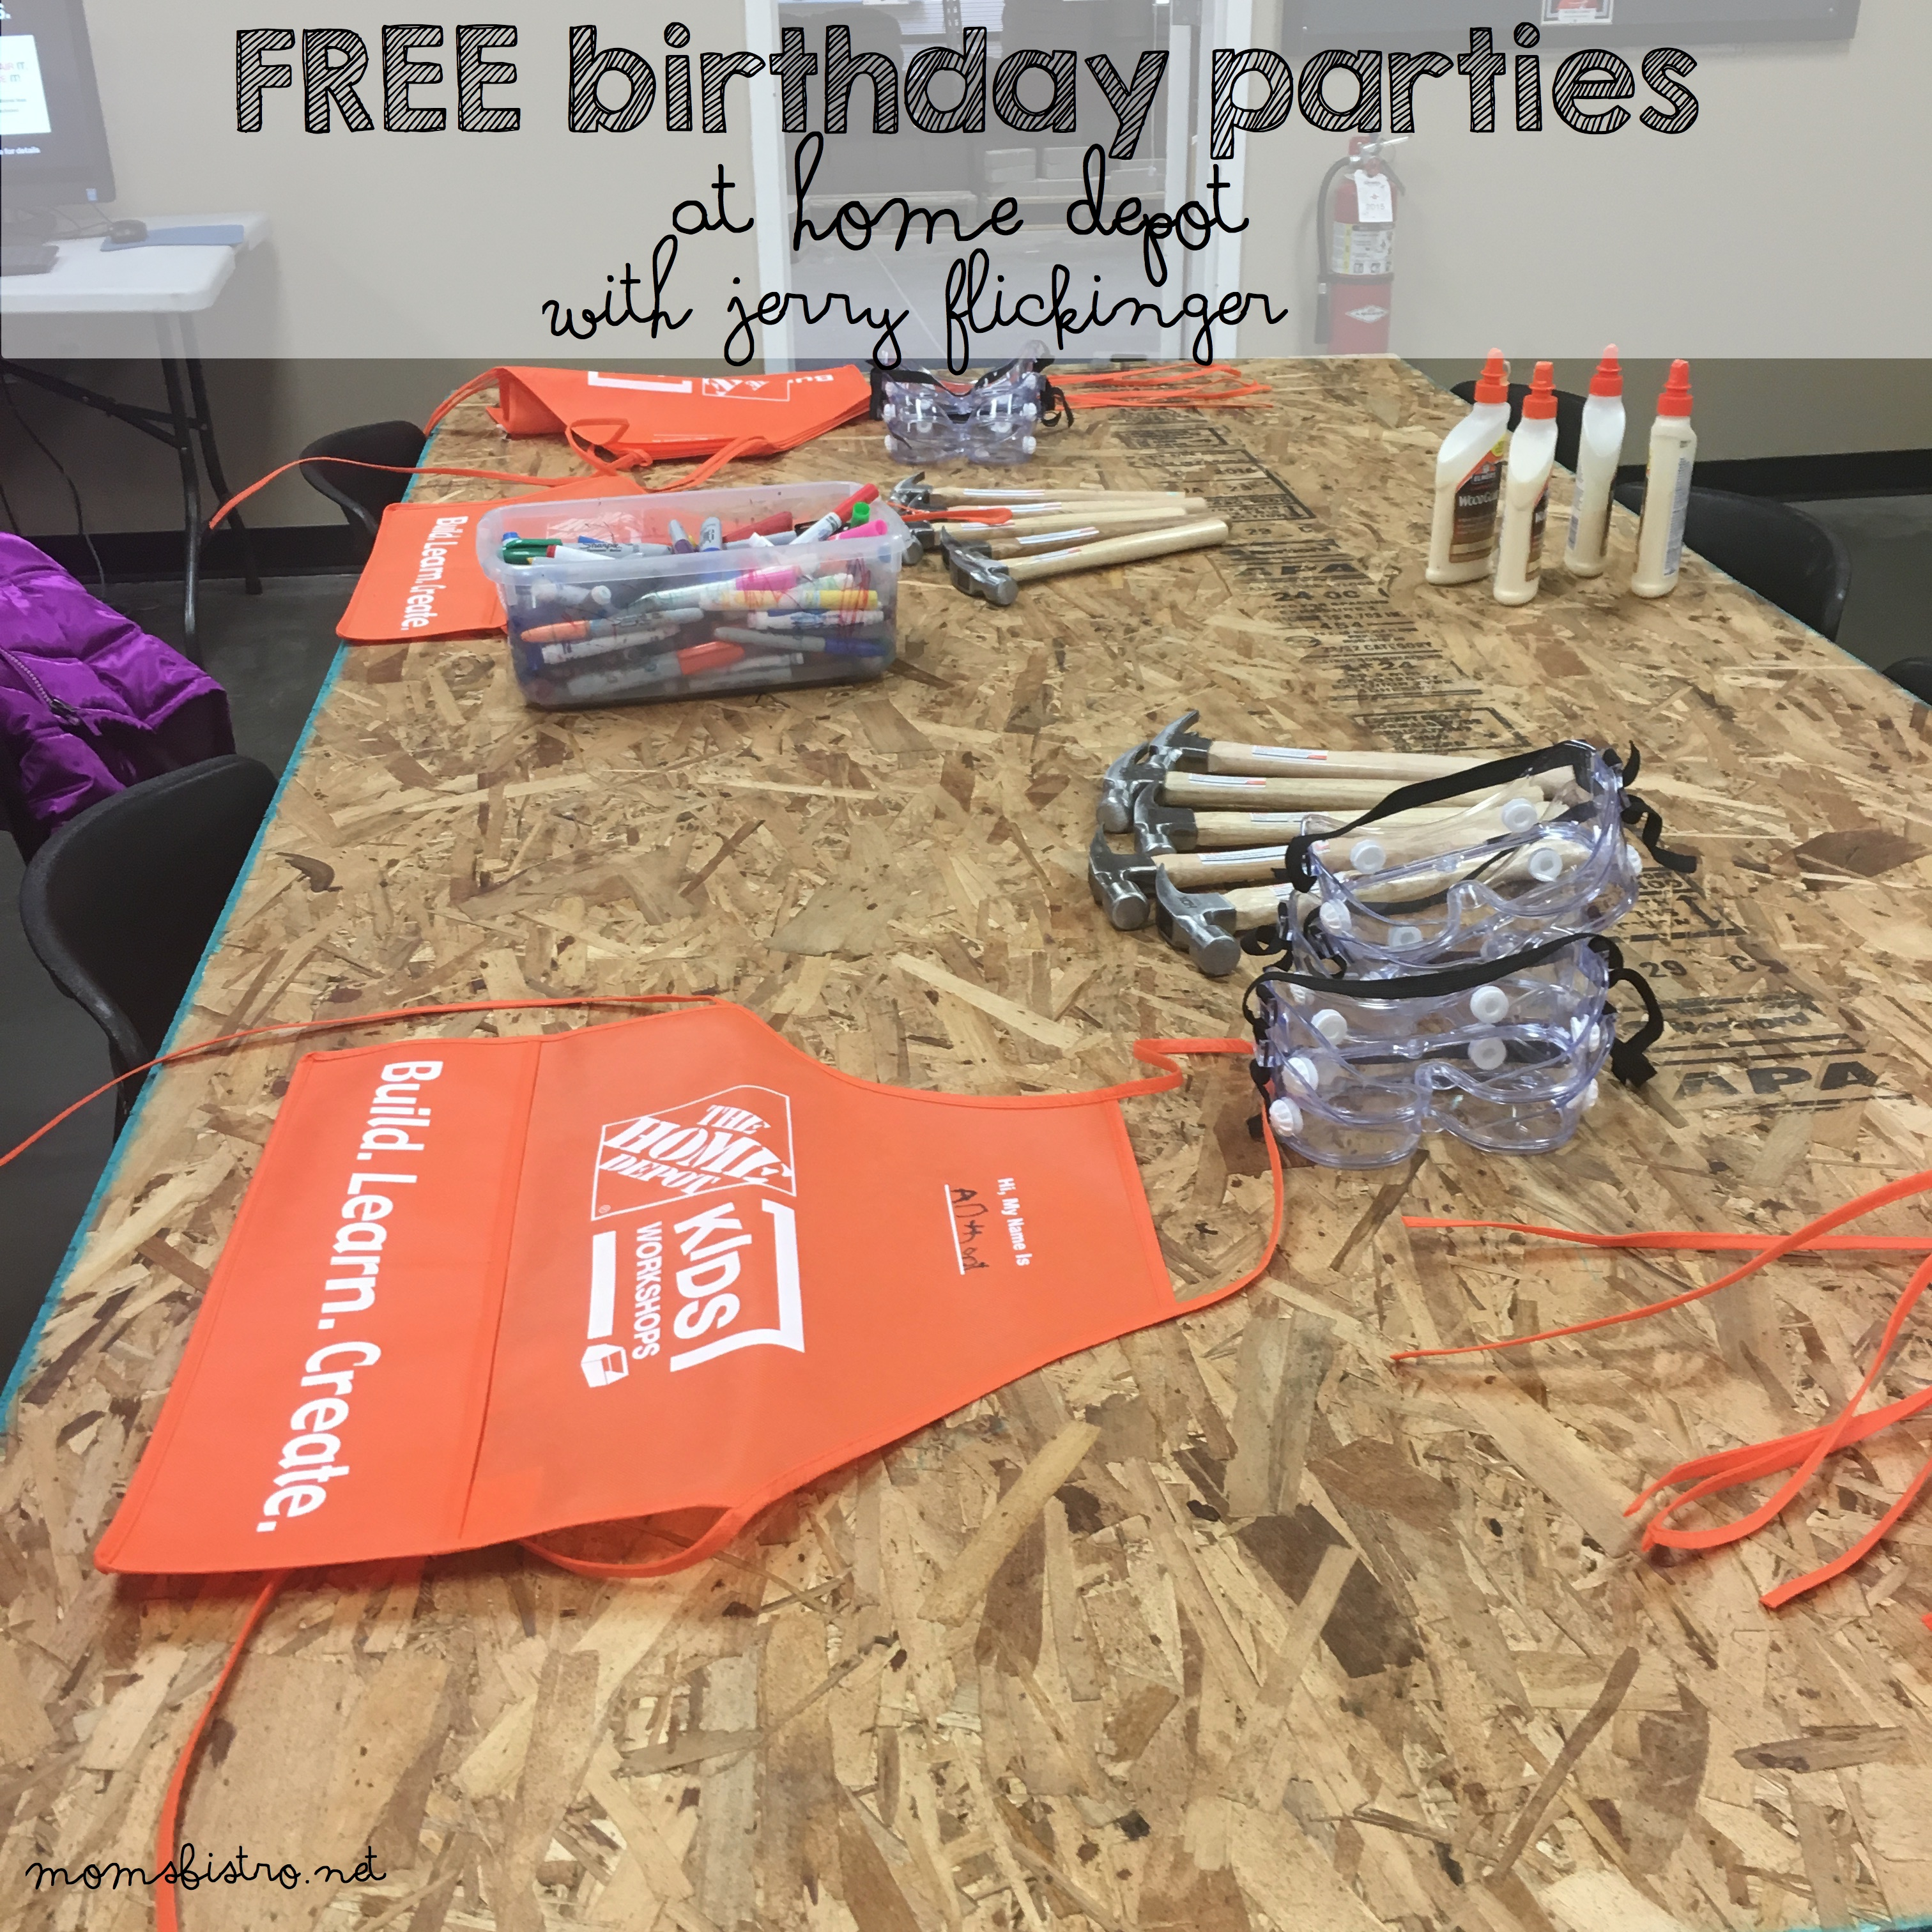 Denver Mom's Rejoice!  FREE Birthday Parties at Home Depot!